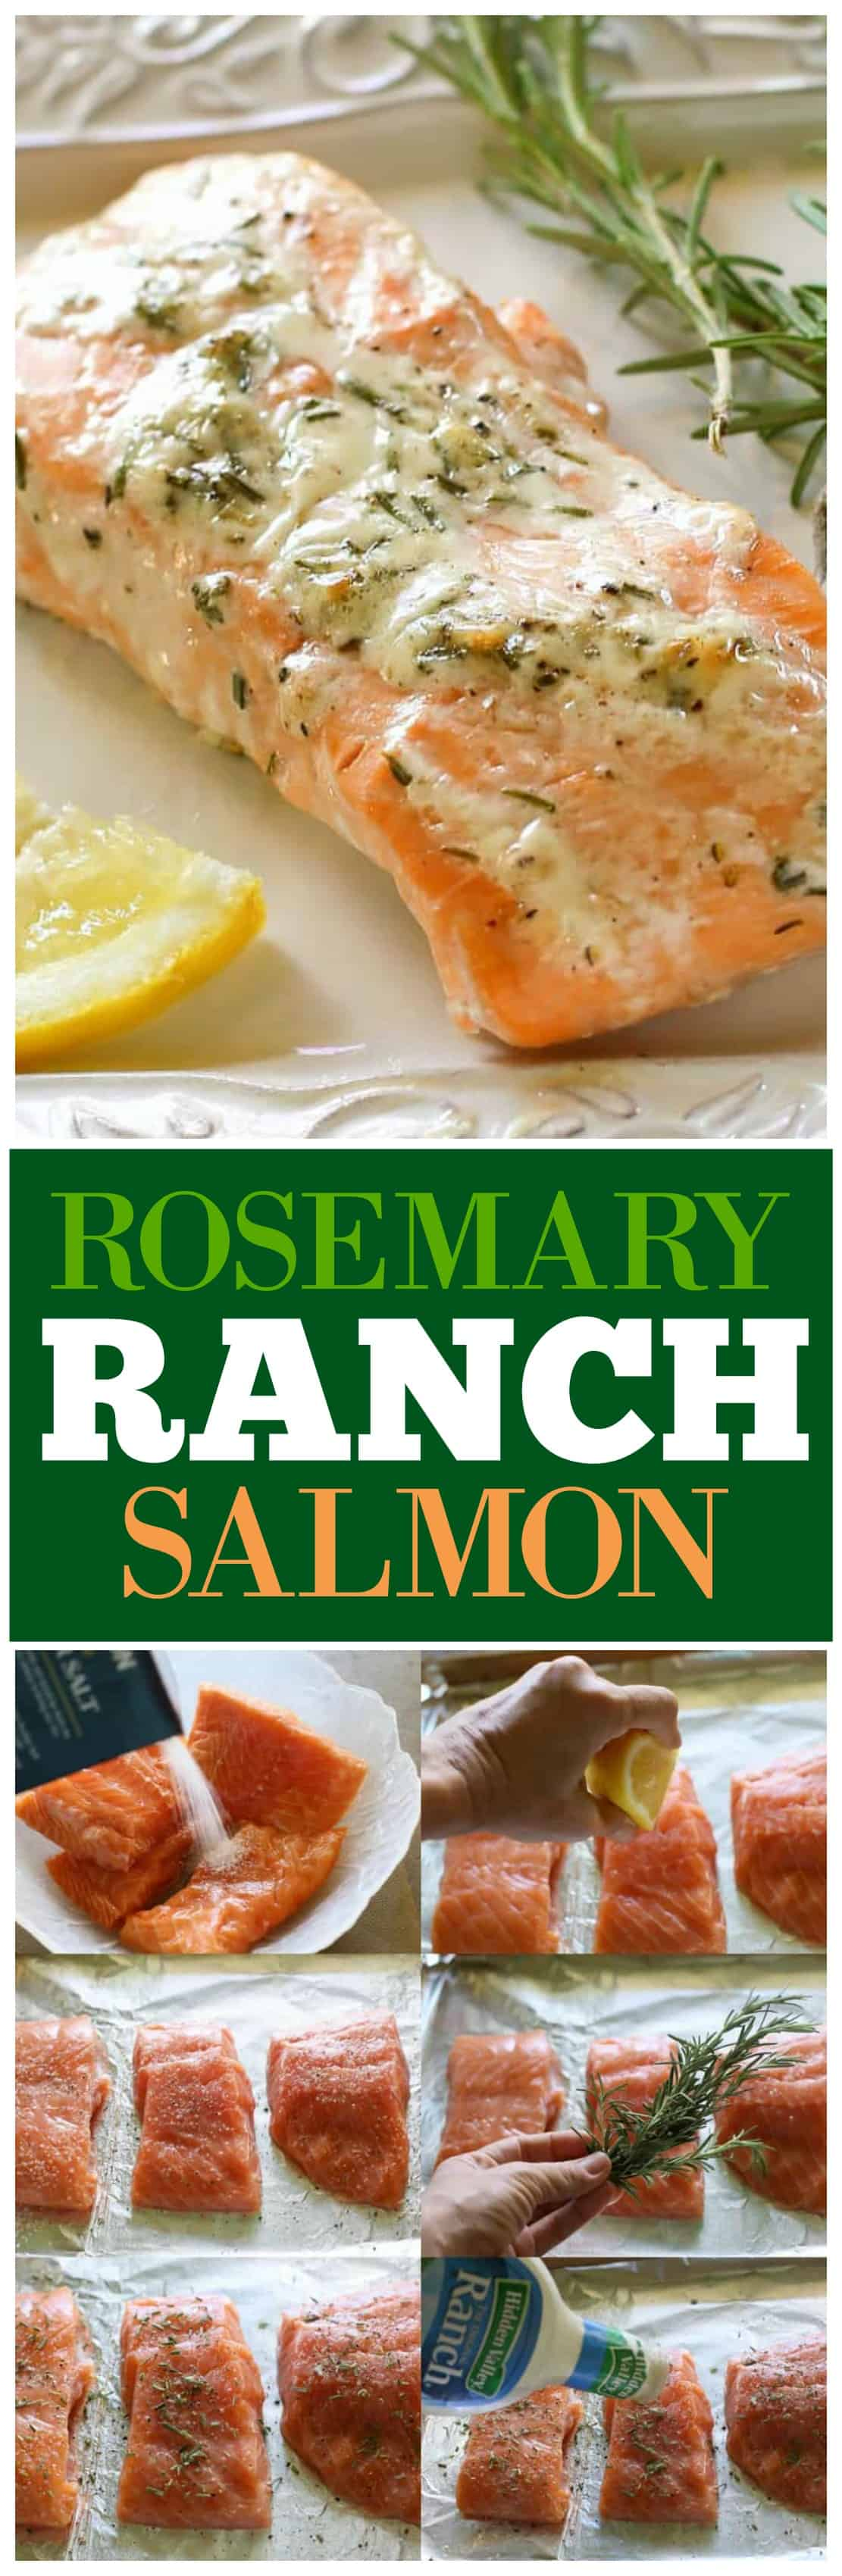 This Rosemary Ranch Salmon is delicious! The combo of the flavors creates a tender and savory sauce that is out of this world. If you're looking for a baked salmon recipe, this one is so easy and so delicious! #healthy #seafood #dinner #rosemary #salmon #recipe